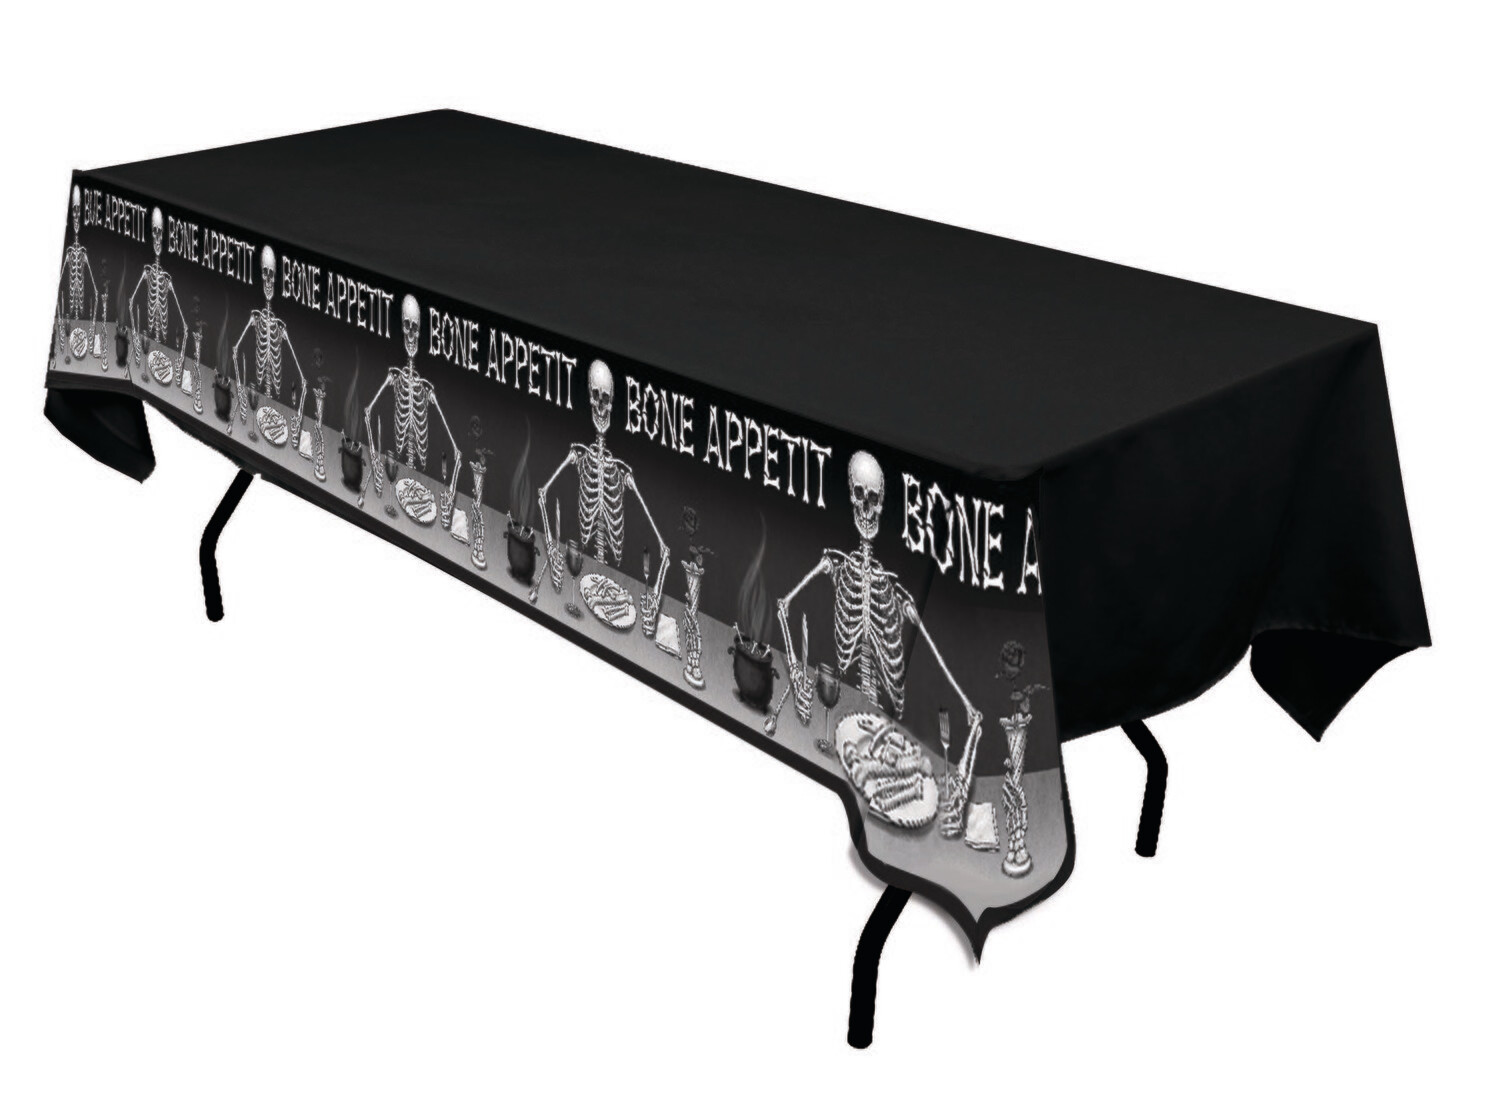 Bon Appetit Table Cover